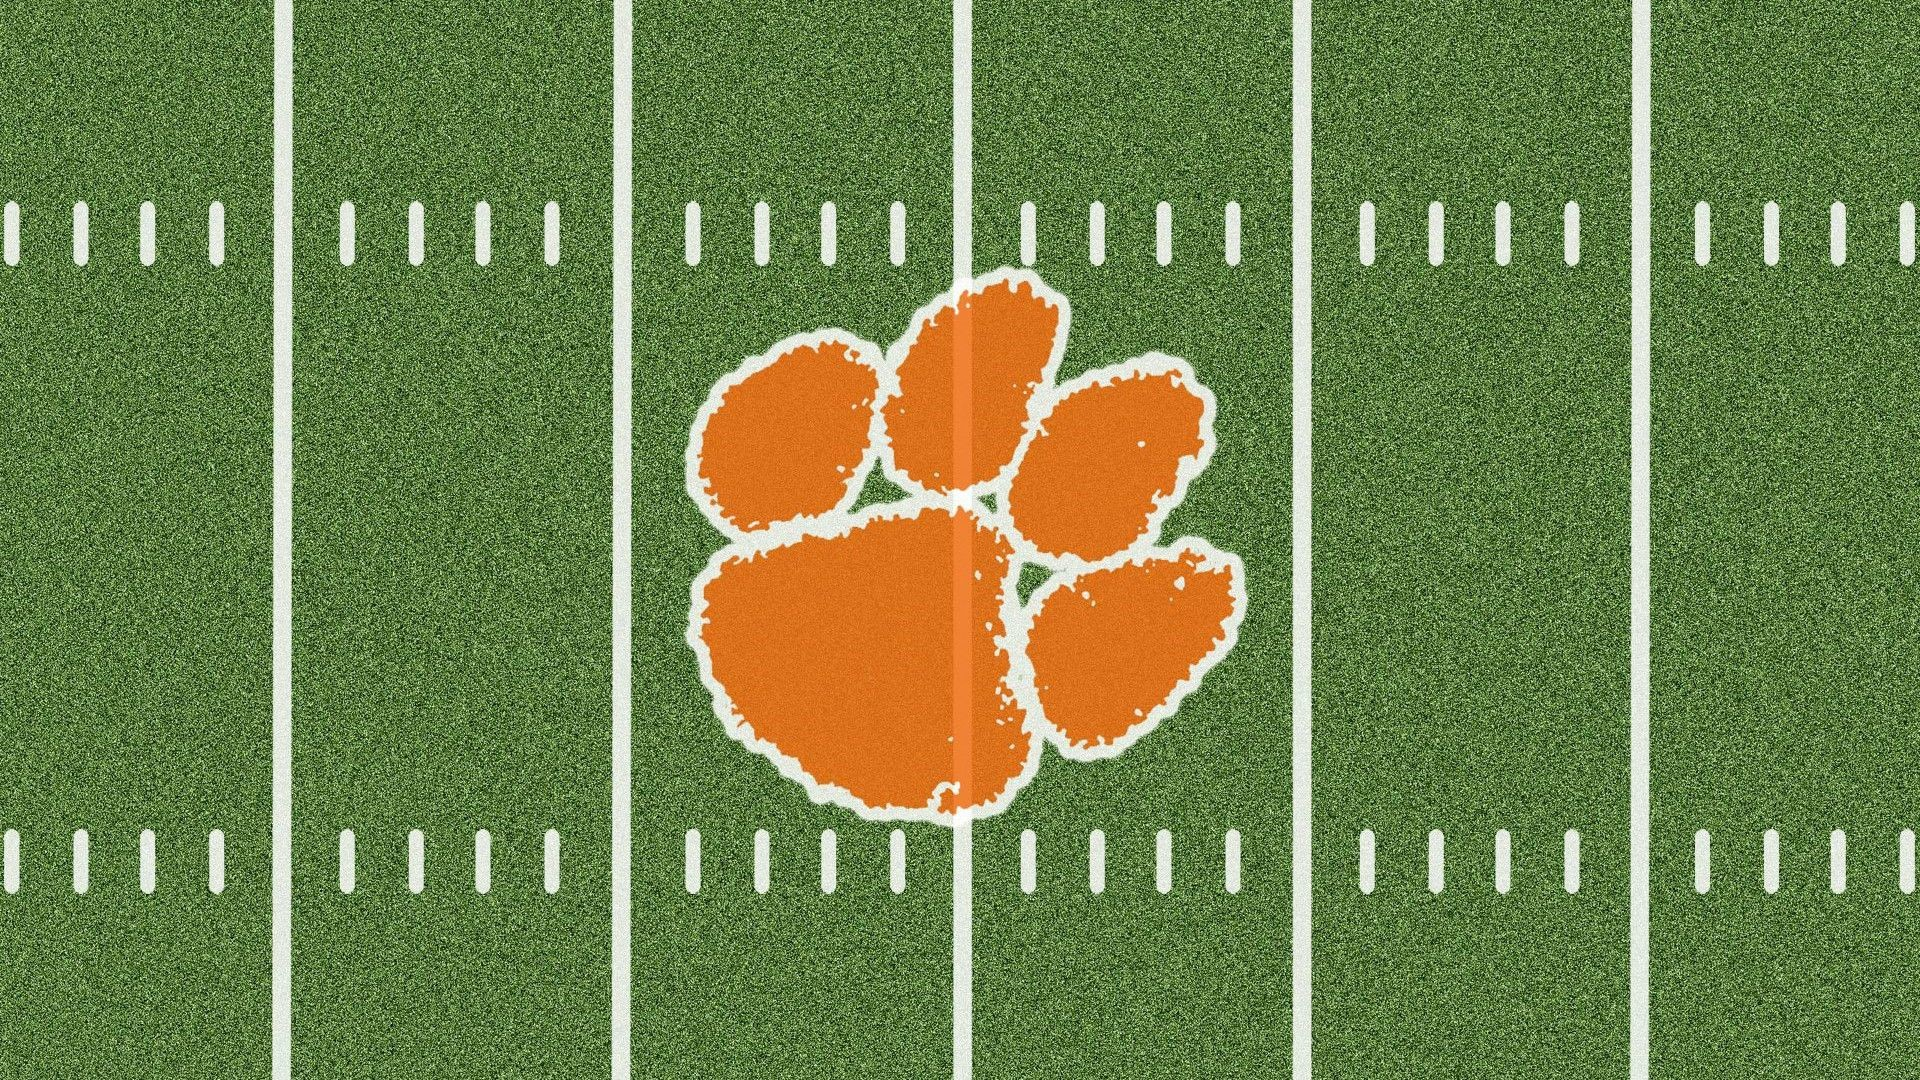 background Clemson pictures) (59+ Wallpapers